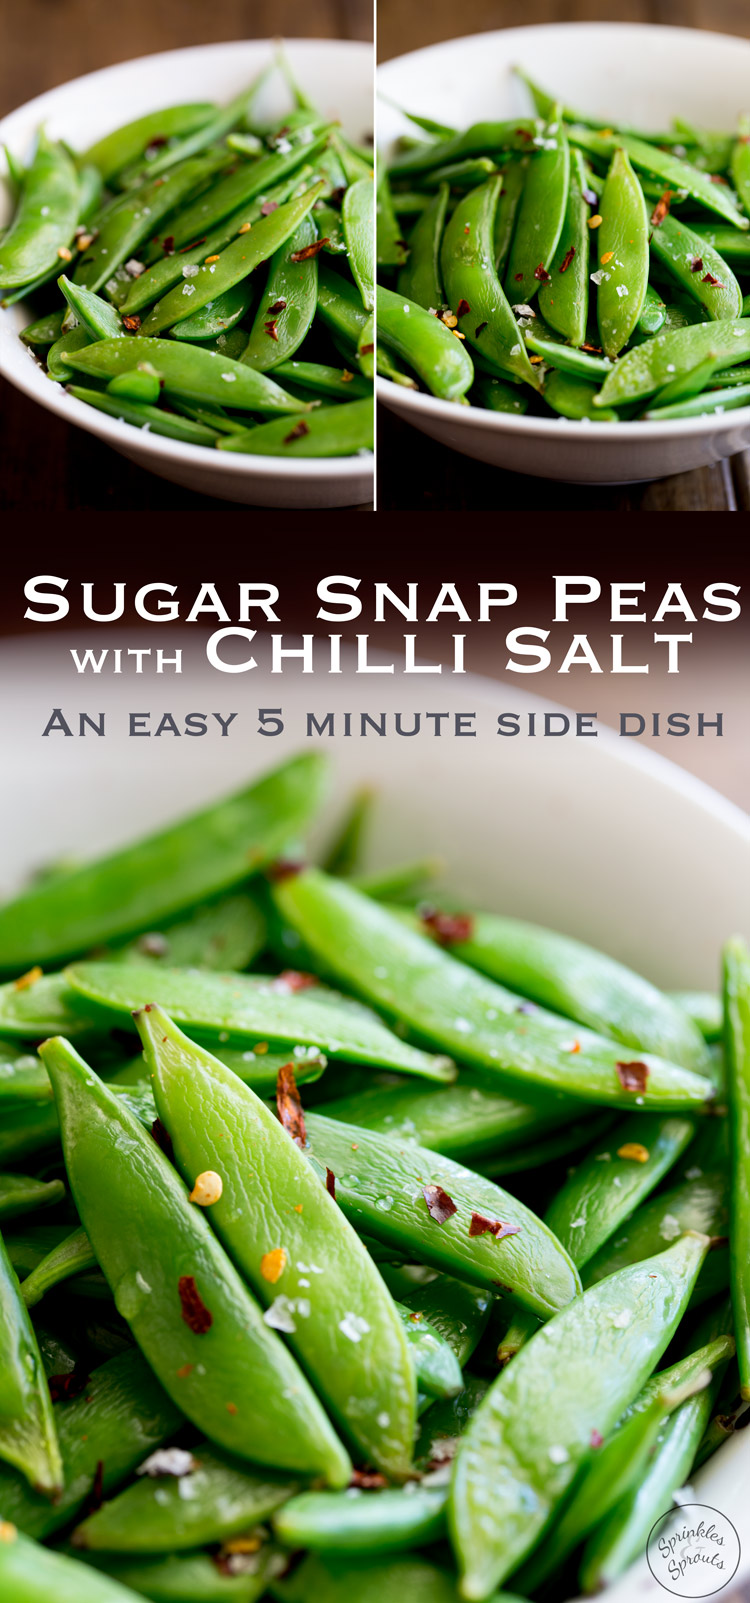 Crisp, sweet sugar snap peas, sautéed to a tender crisp perfection and then sprinkled with chilli flakes and sea salt. A healthy 5 minute side dish! From https://www.sprinklesandsprouts.com